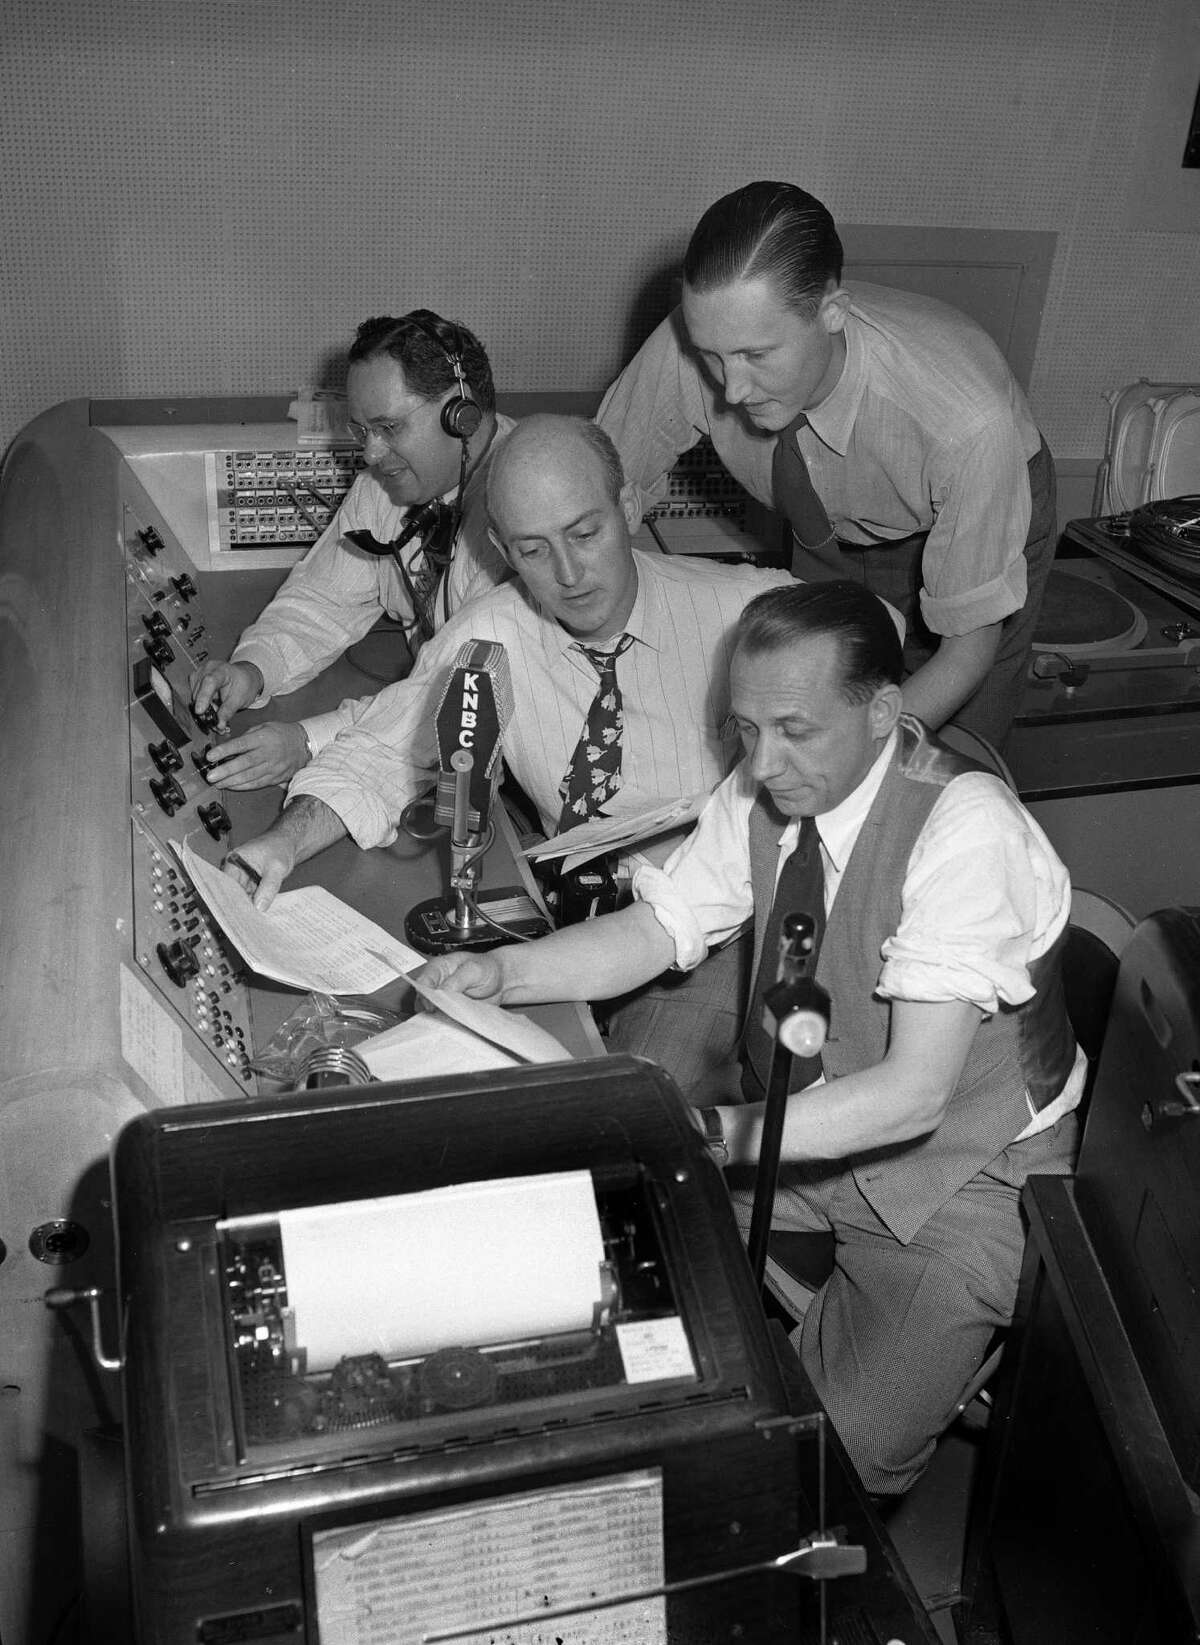 Election night at station KNBC in 1948, when radio was strong in San Francisco, but not as big as it would become in the 1950s and beyond.